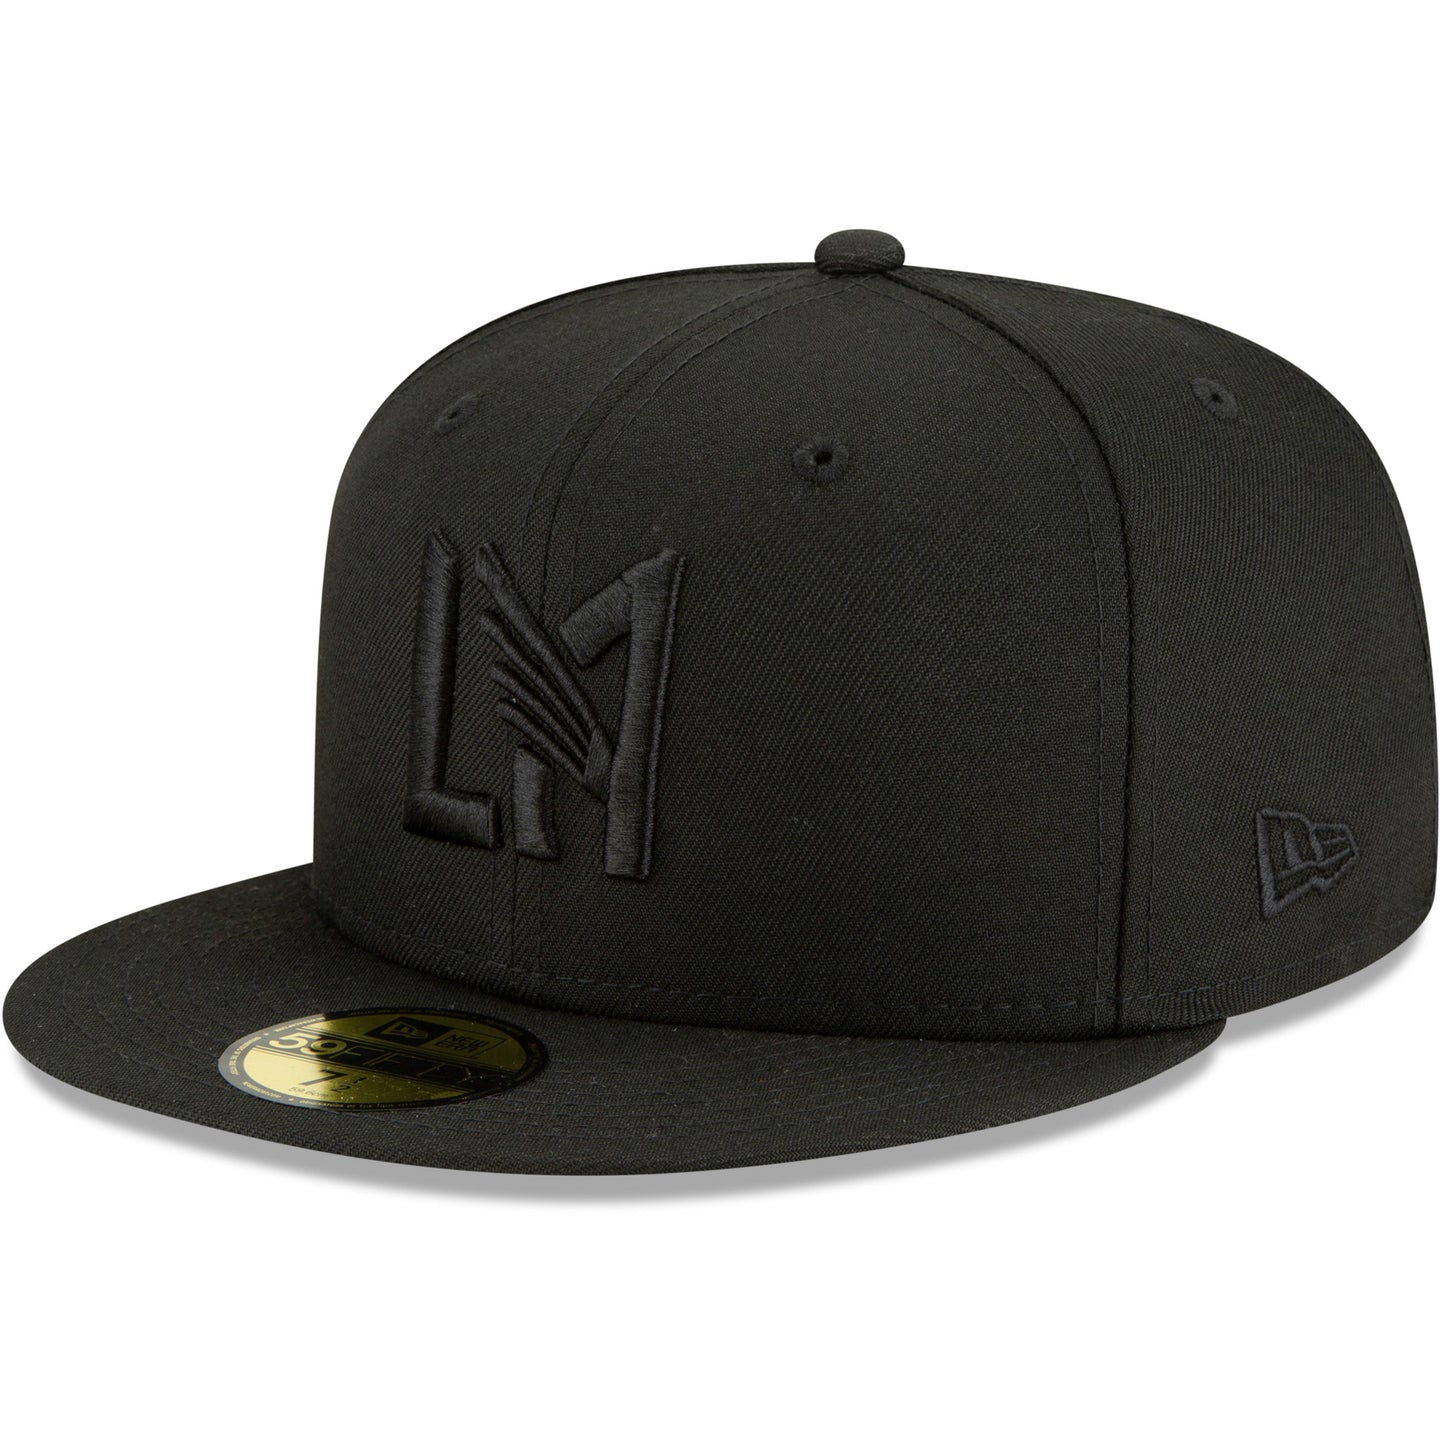 LAFC New Era Blackout Icon Logo 59FIFTY Fitted Hat - Black/Black